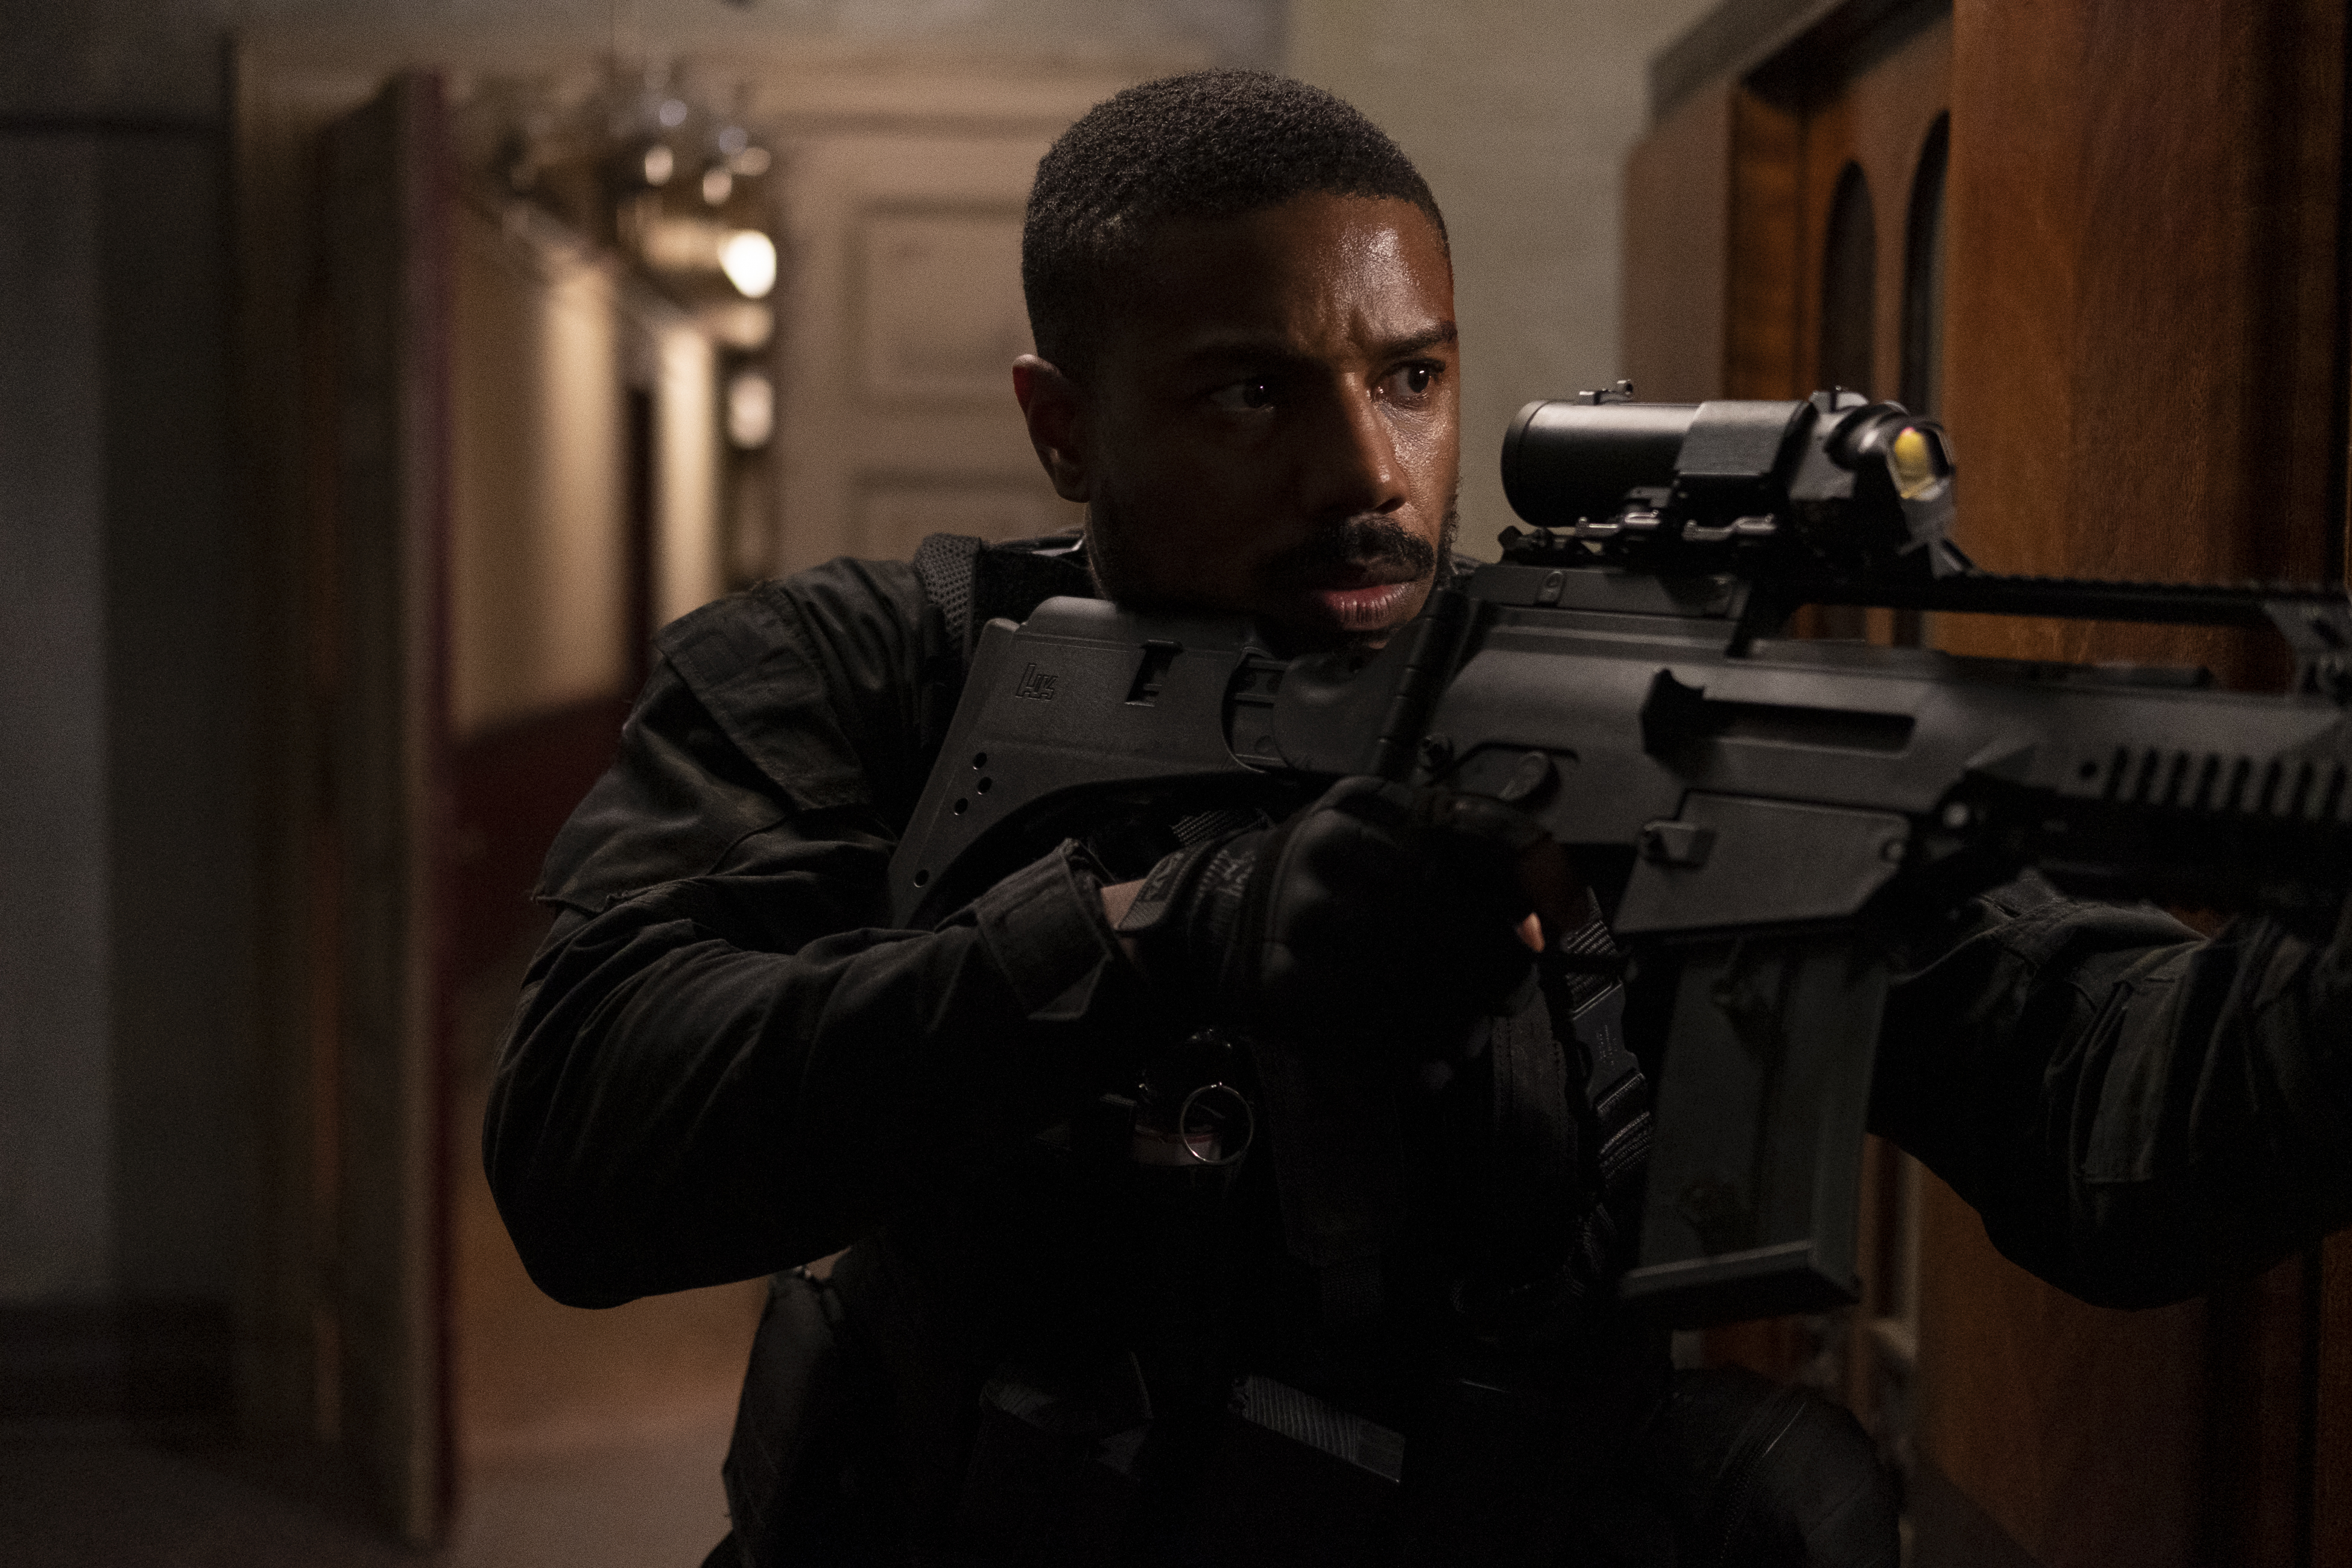 """HHW Gaming: Michael B. Jordan Says """"It Would Be Dope"""" To Be Featured In His Own 'Without Remorse' Video Game"""